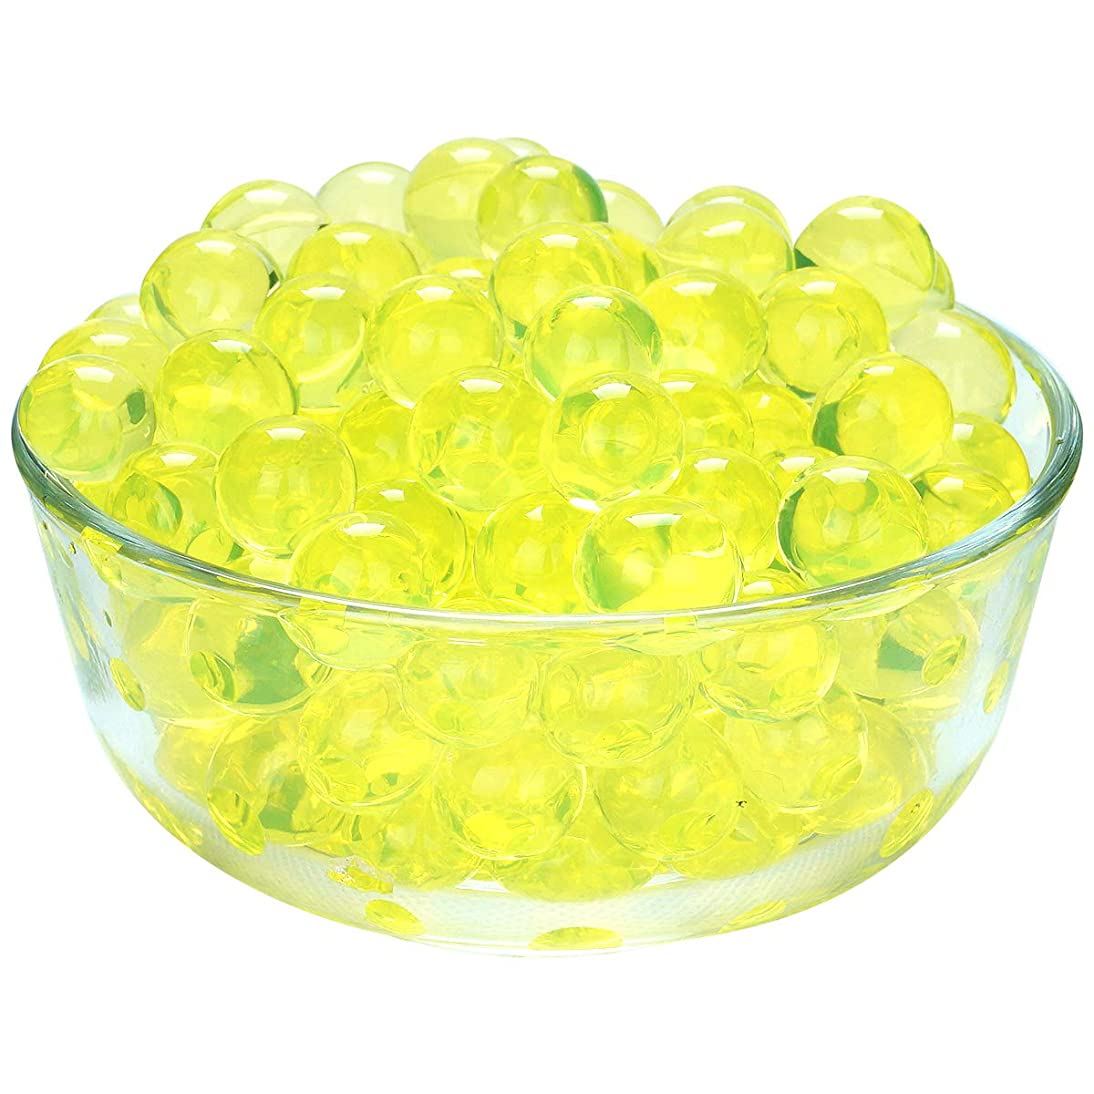 LOVOUS 7000 Pcs Water Beads, Crystal Soil Water Bead Gel, Wedding Decoration Vase Filler - Furniture Decorative Vase Filler, All Occasion Table Scatters Centerpiece Decorations(Yellow)